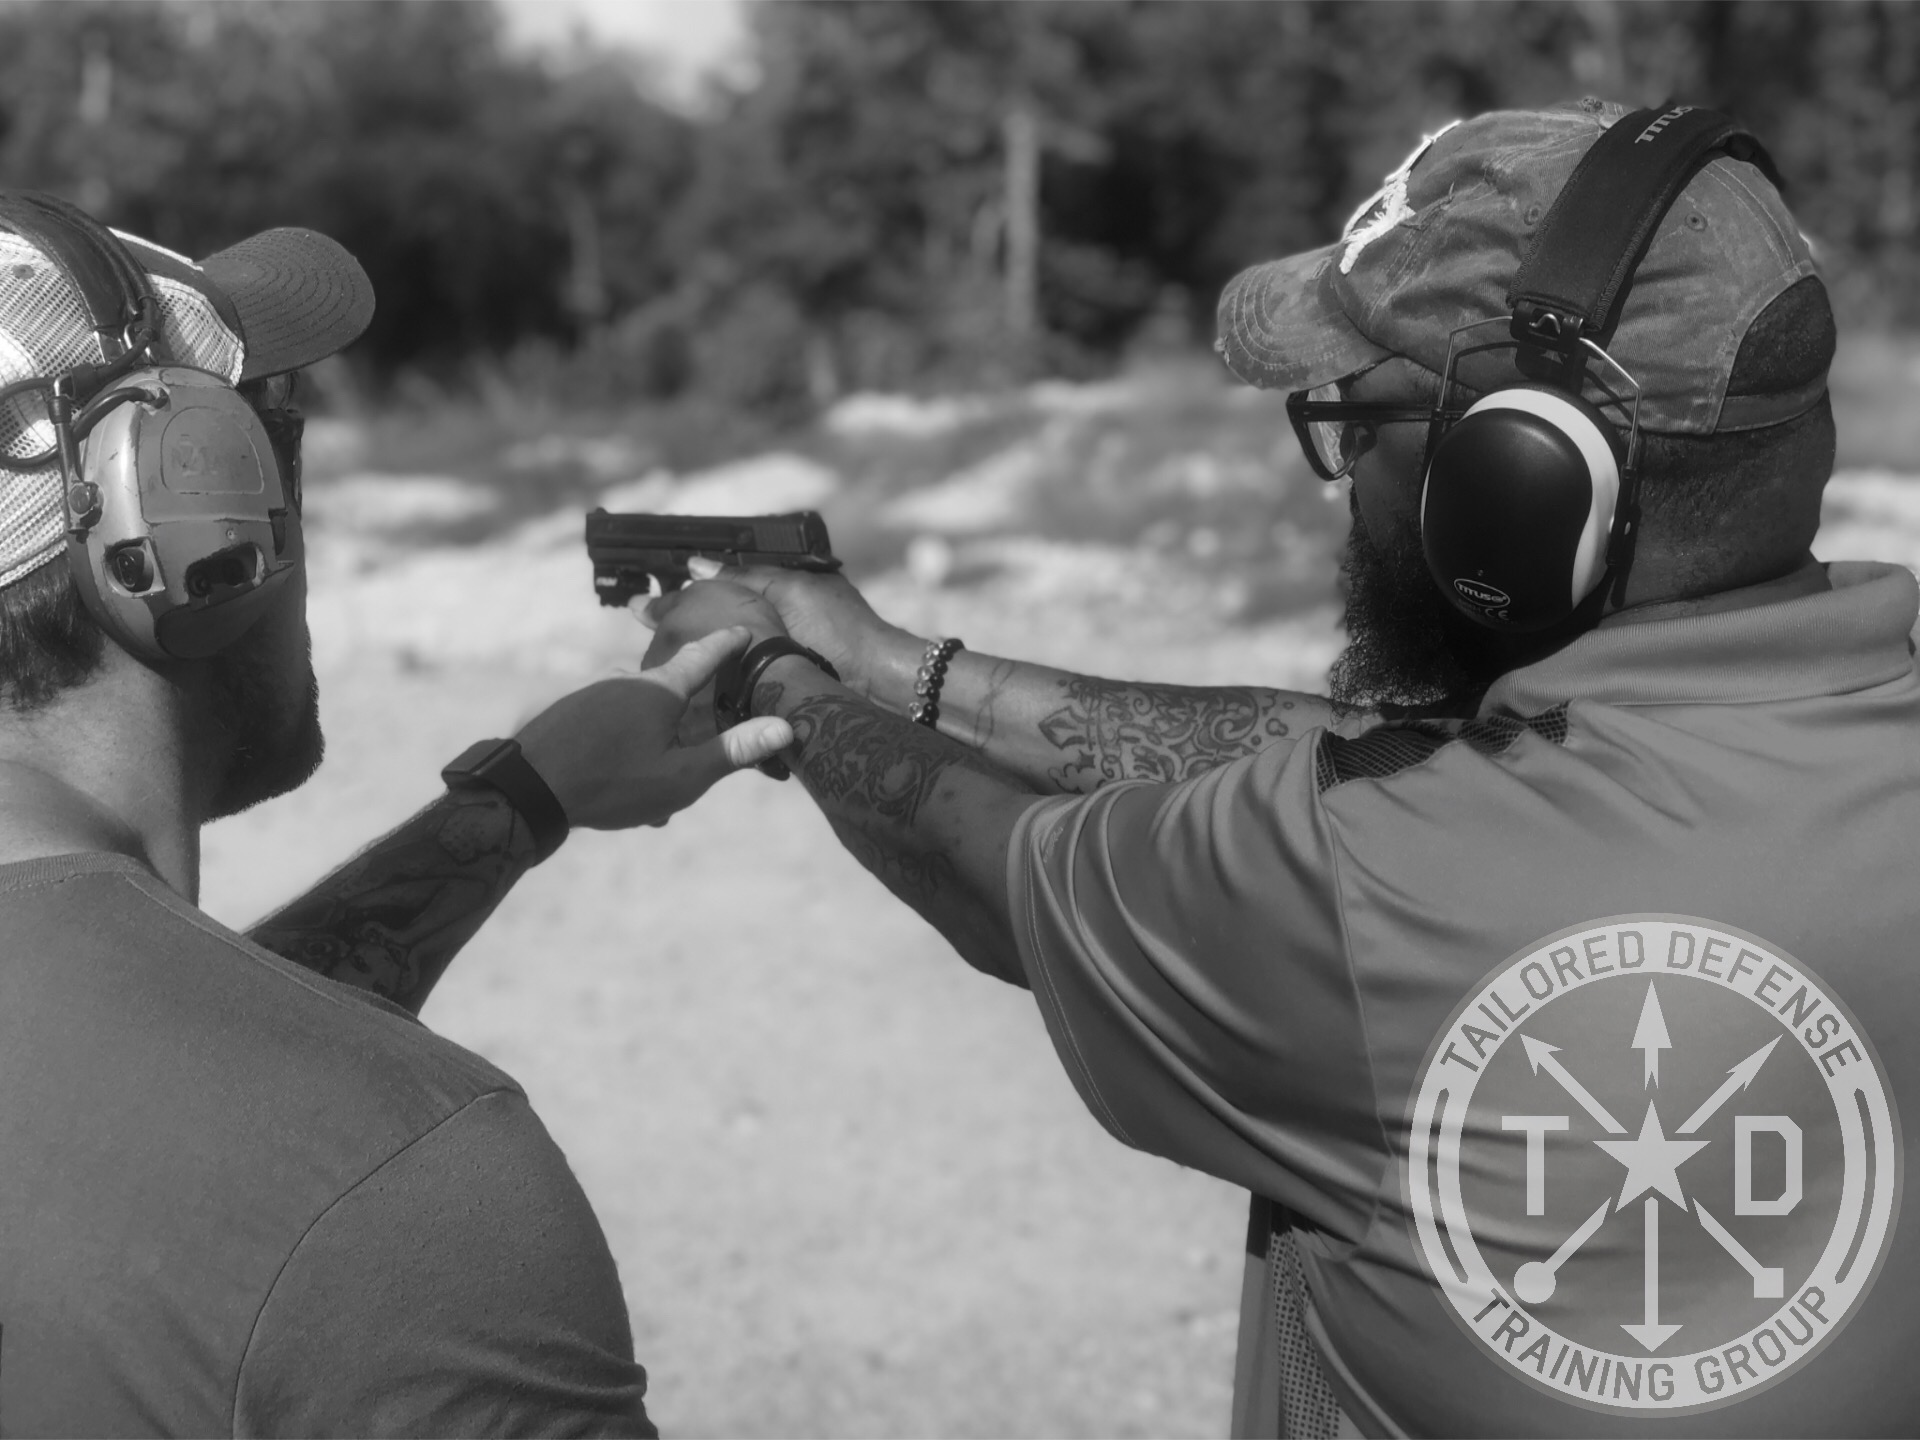 Tailored Defense Training Group Firearms